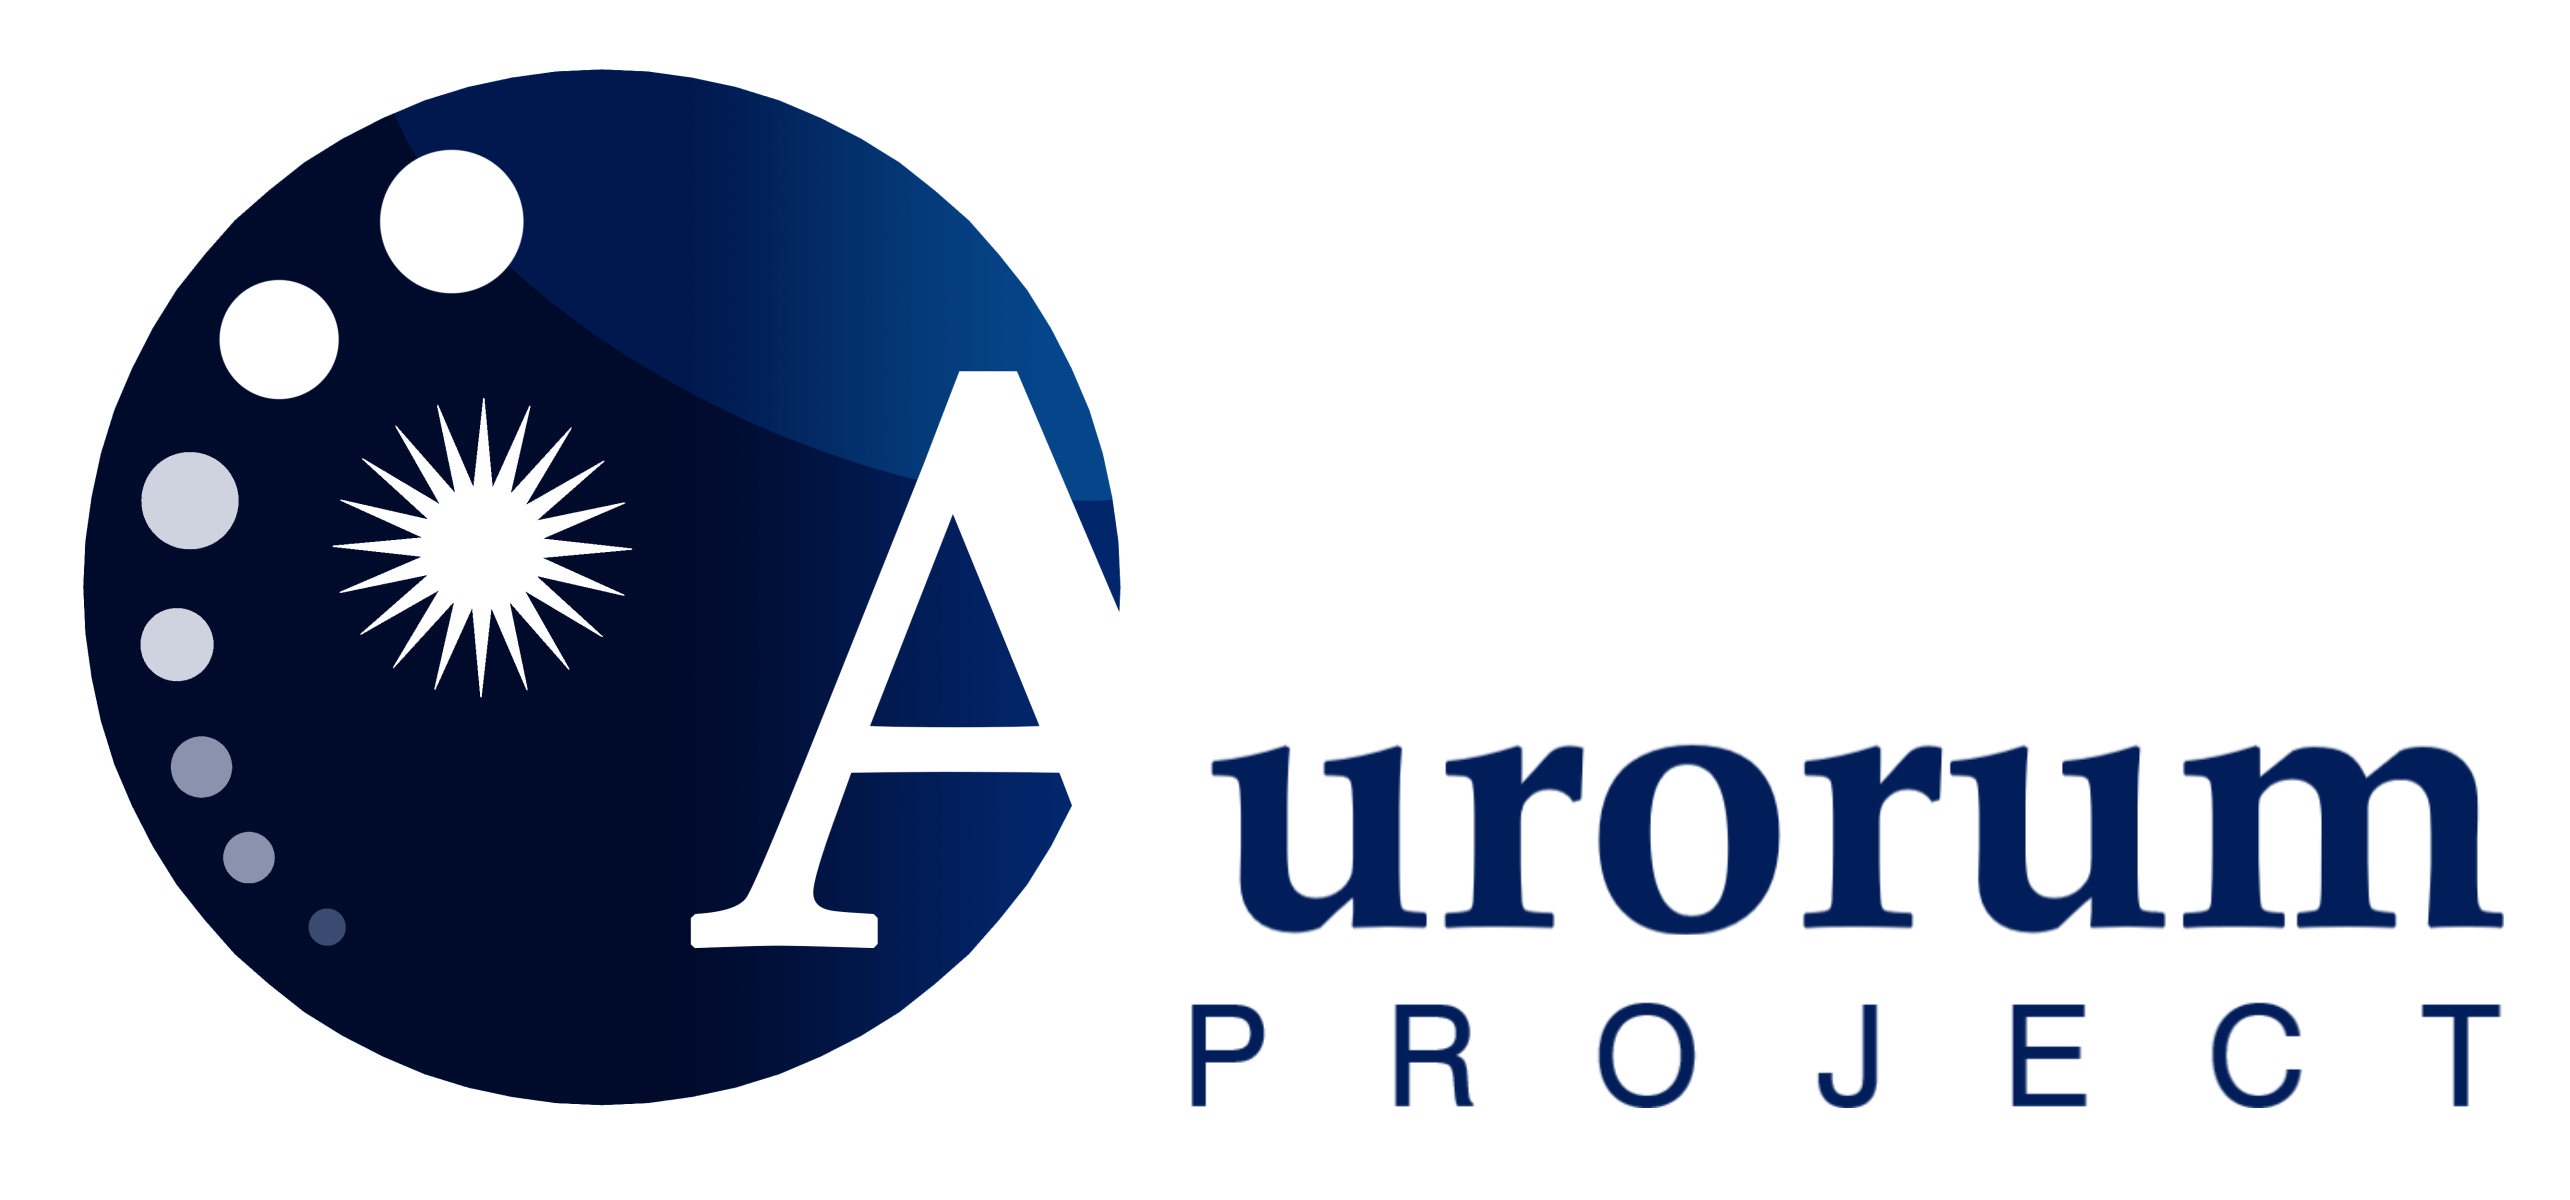 Aurorum project logo.png